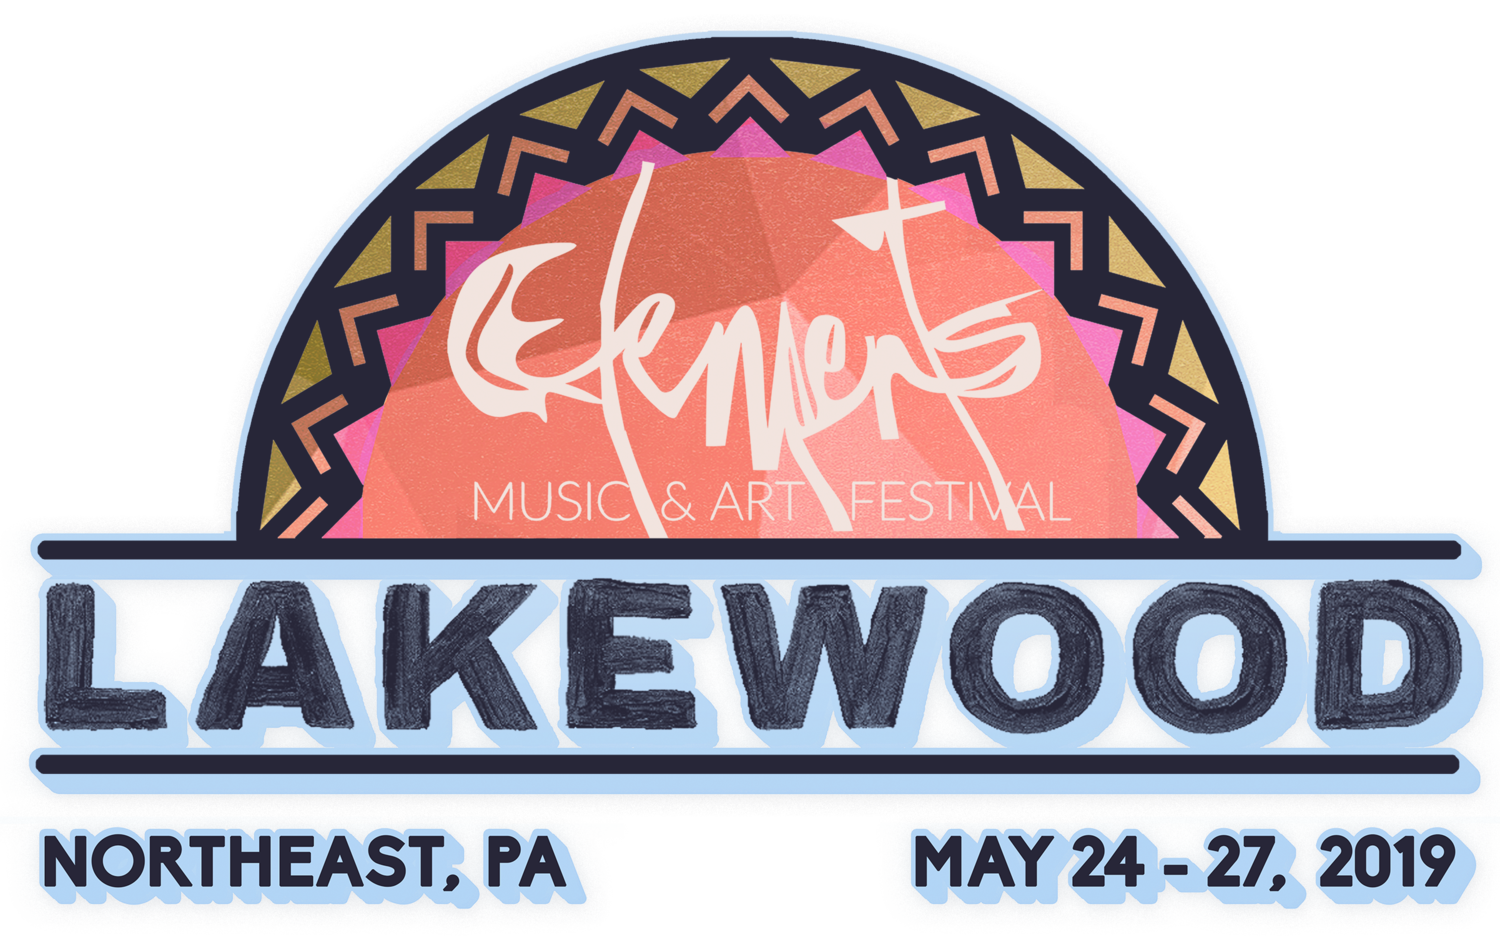 Elements Music & Art Festival - Lakewood, PA,  Memorial Day Weekend May 24-27, 2019